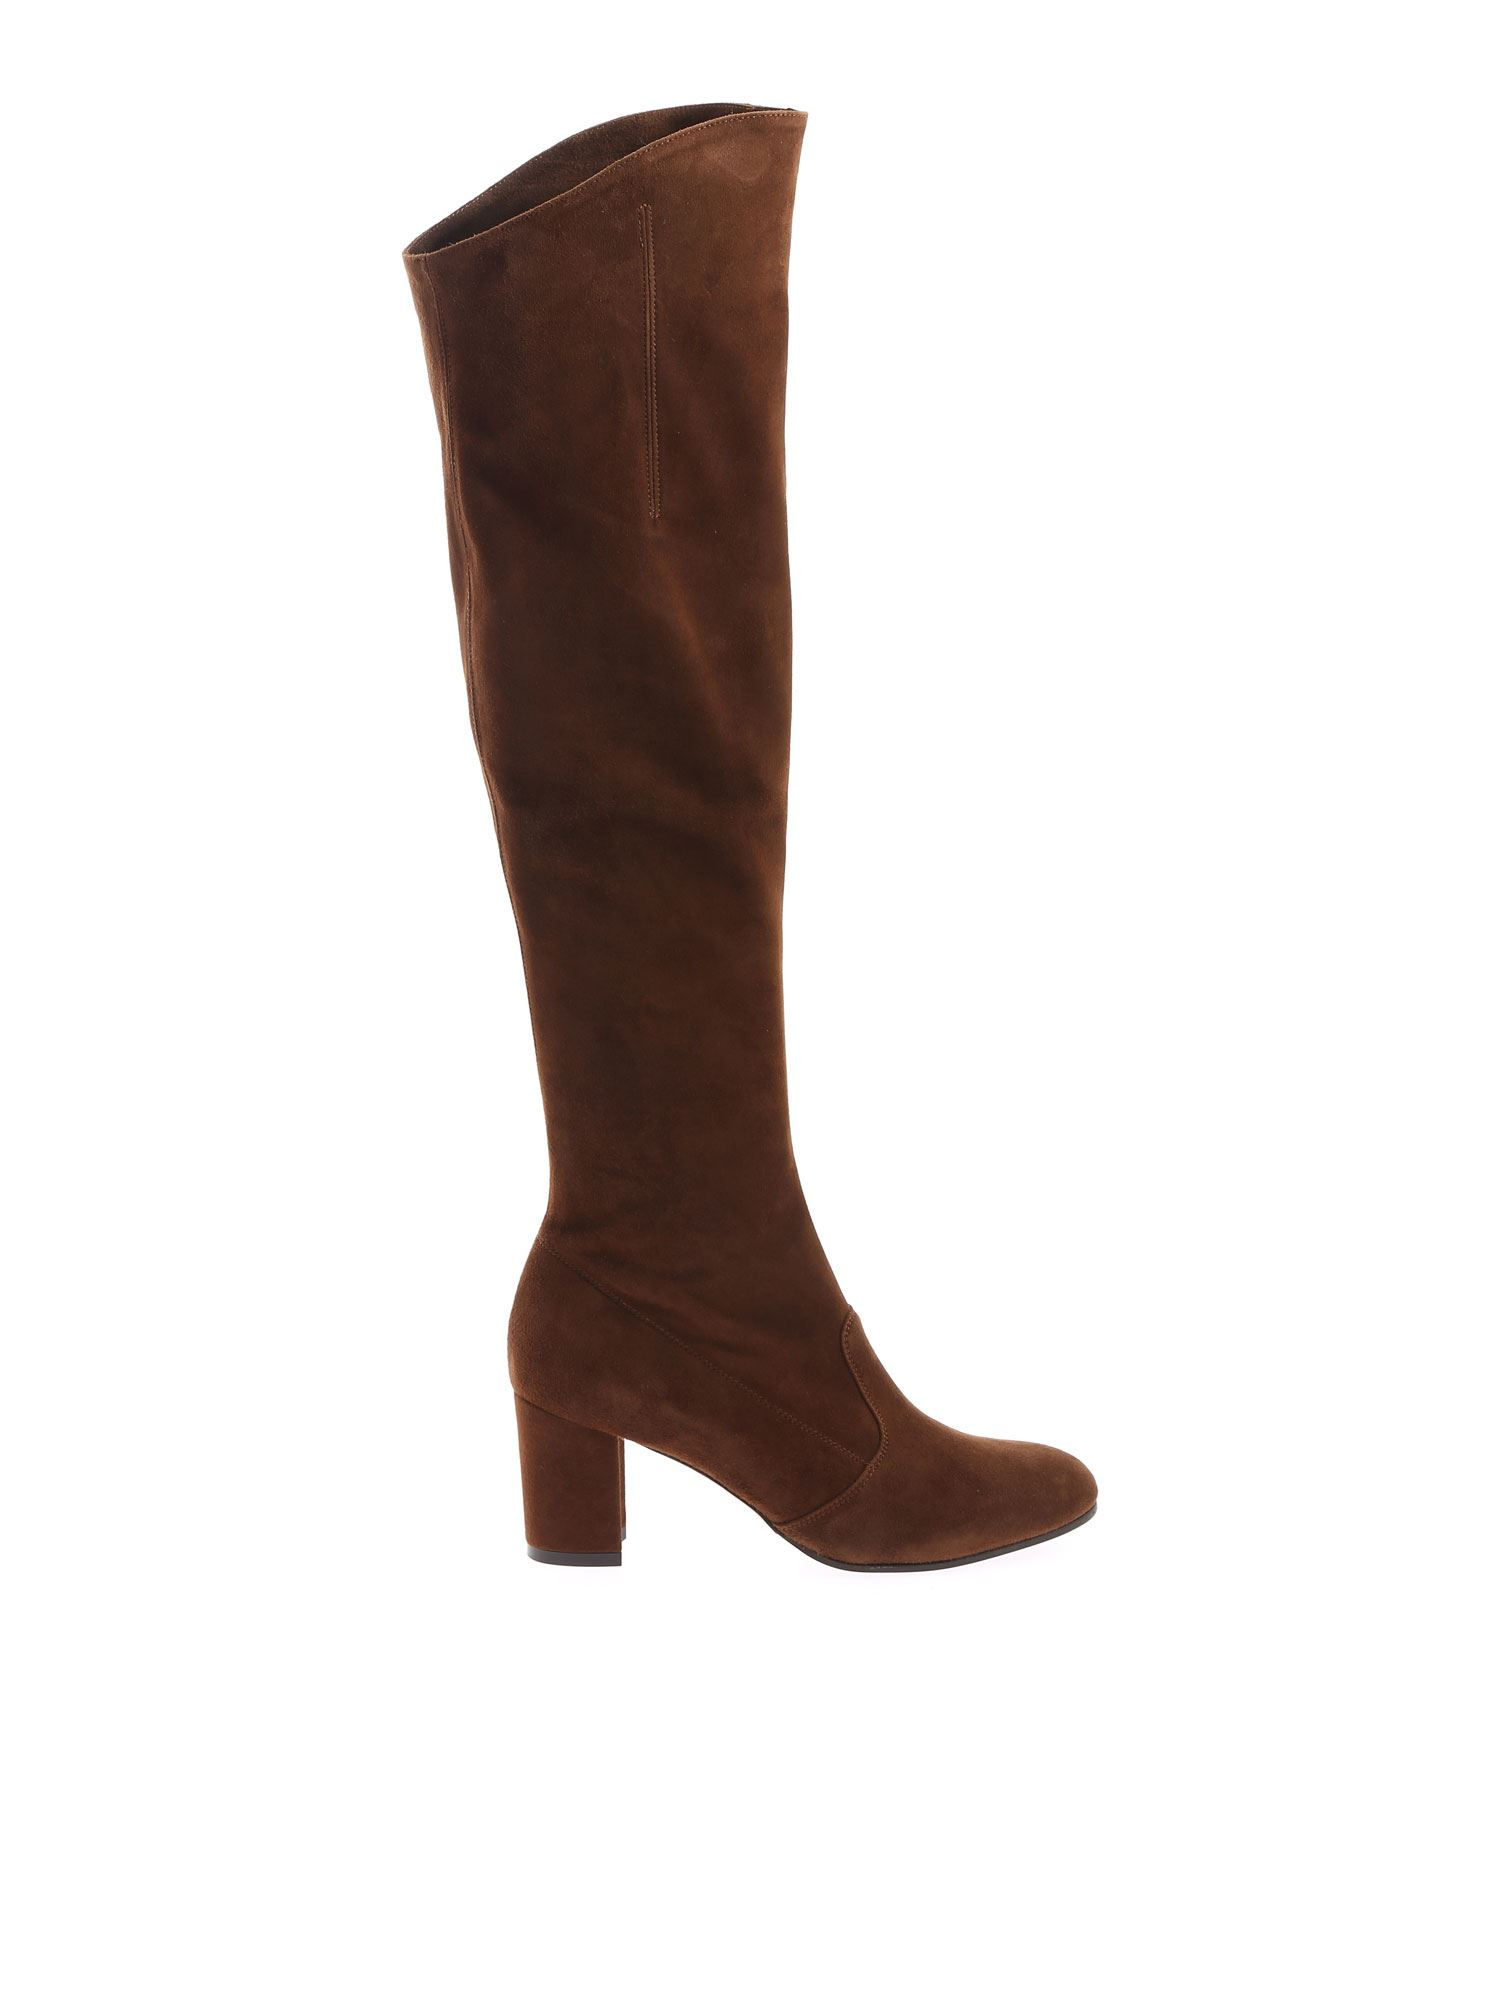 L'autre Chose KNEE-HIGH BOOTS IN BROWN